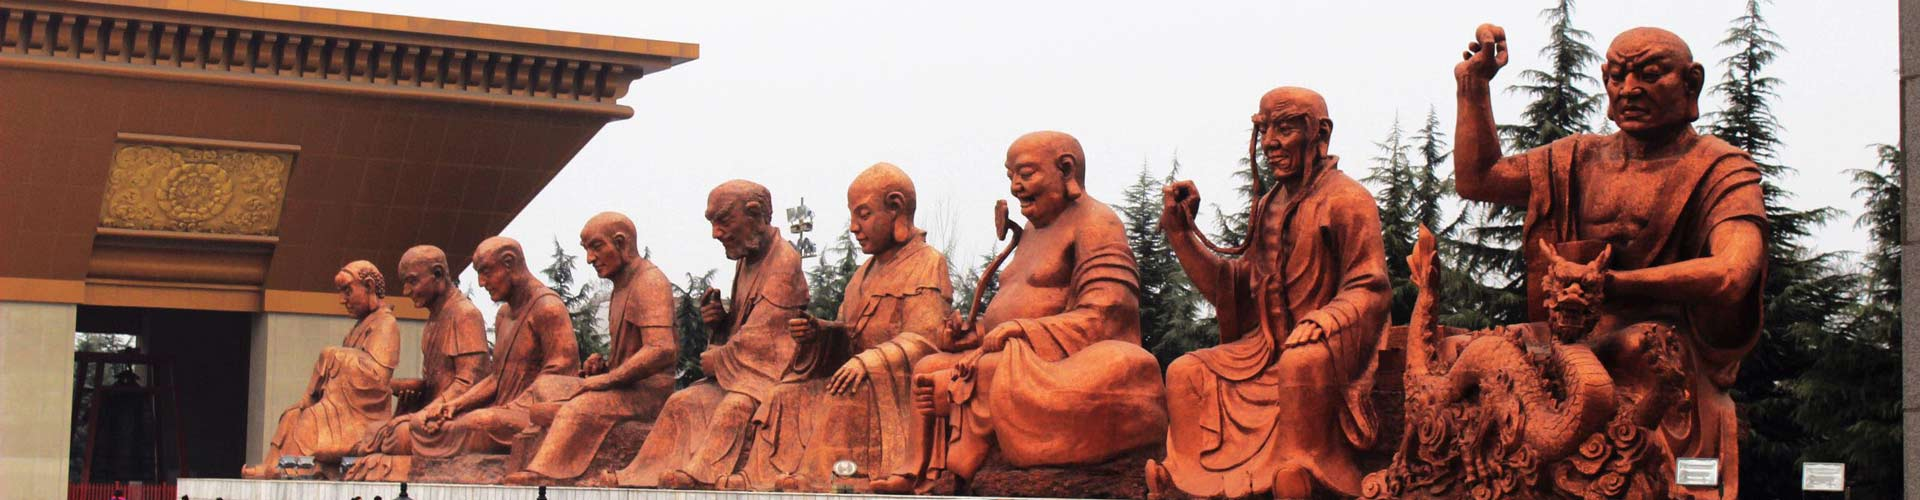 1 Day Tour: FaMen Temple, MaoLing and QianLing Museum